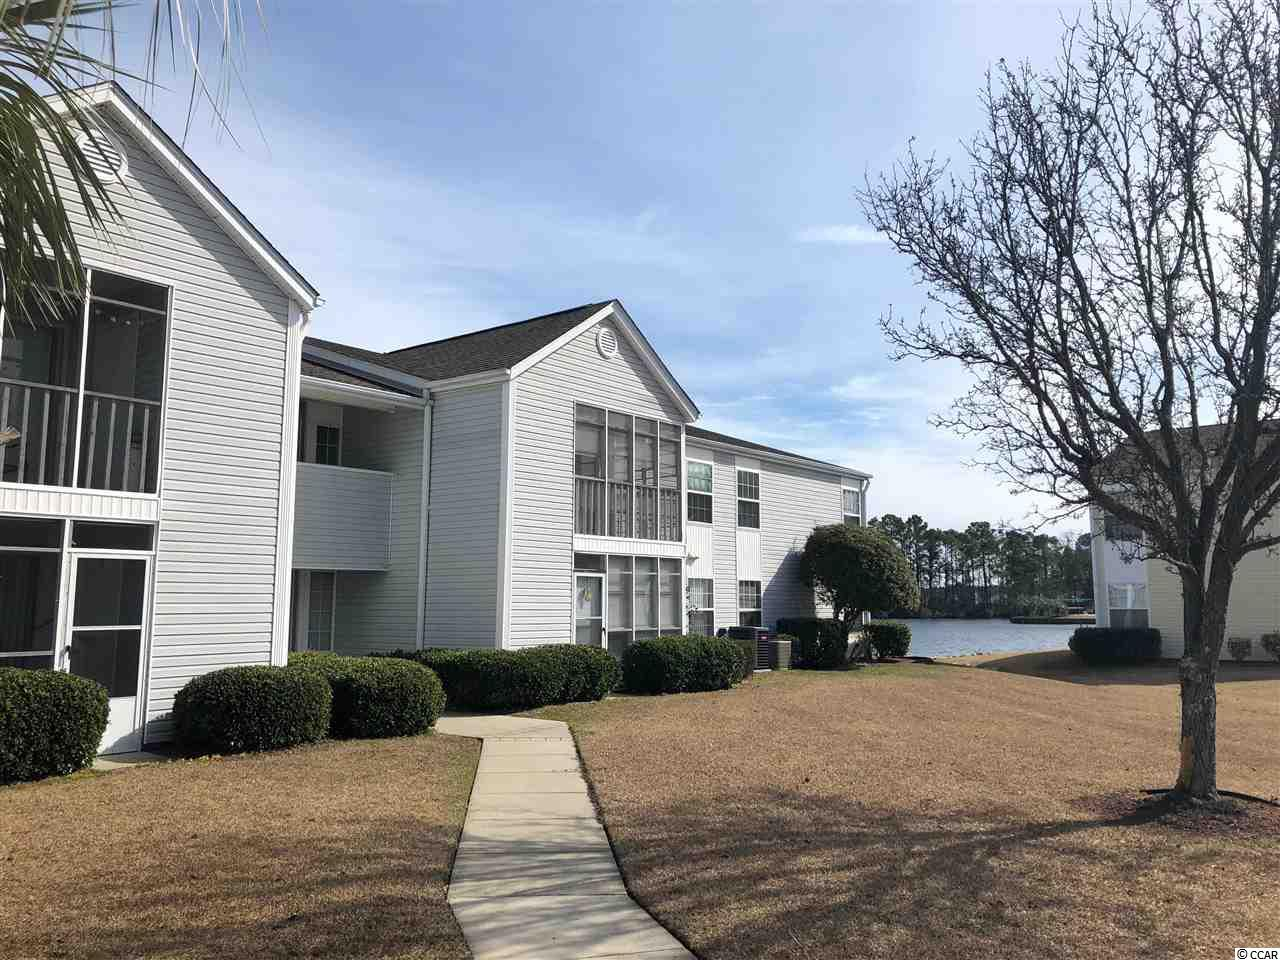 South Bay Lakes - Quiet complex. Close to grocery store, Bypass 17 and Surfside Beach. Short drive to the beach, restaurants, airport and other attraction the Grand Strand has to offer. Community pool.